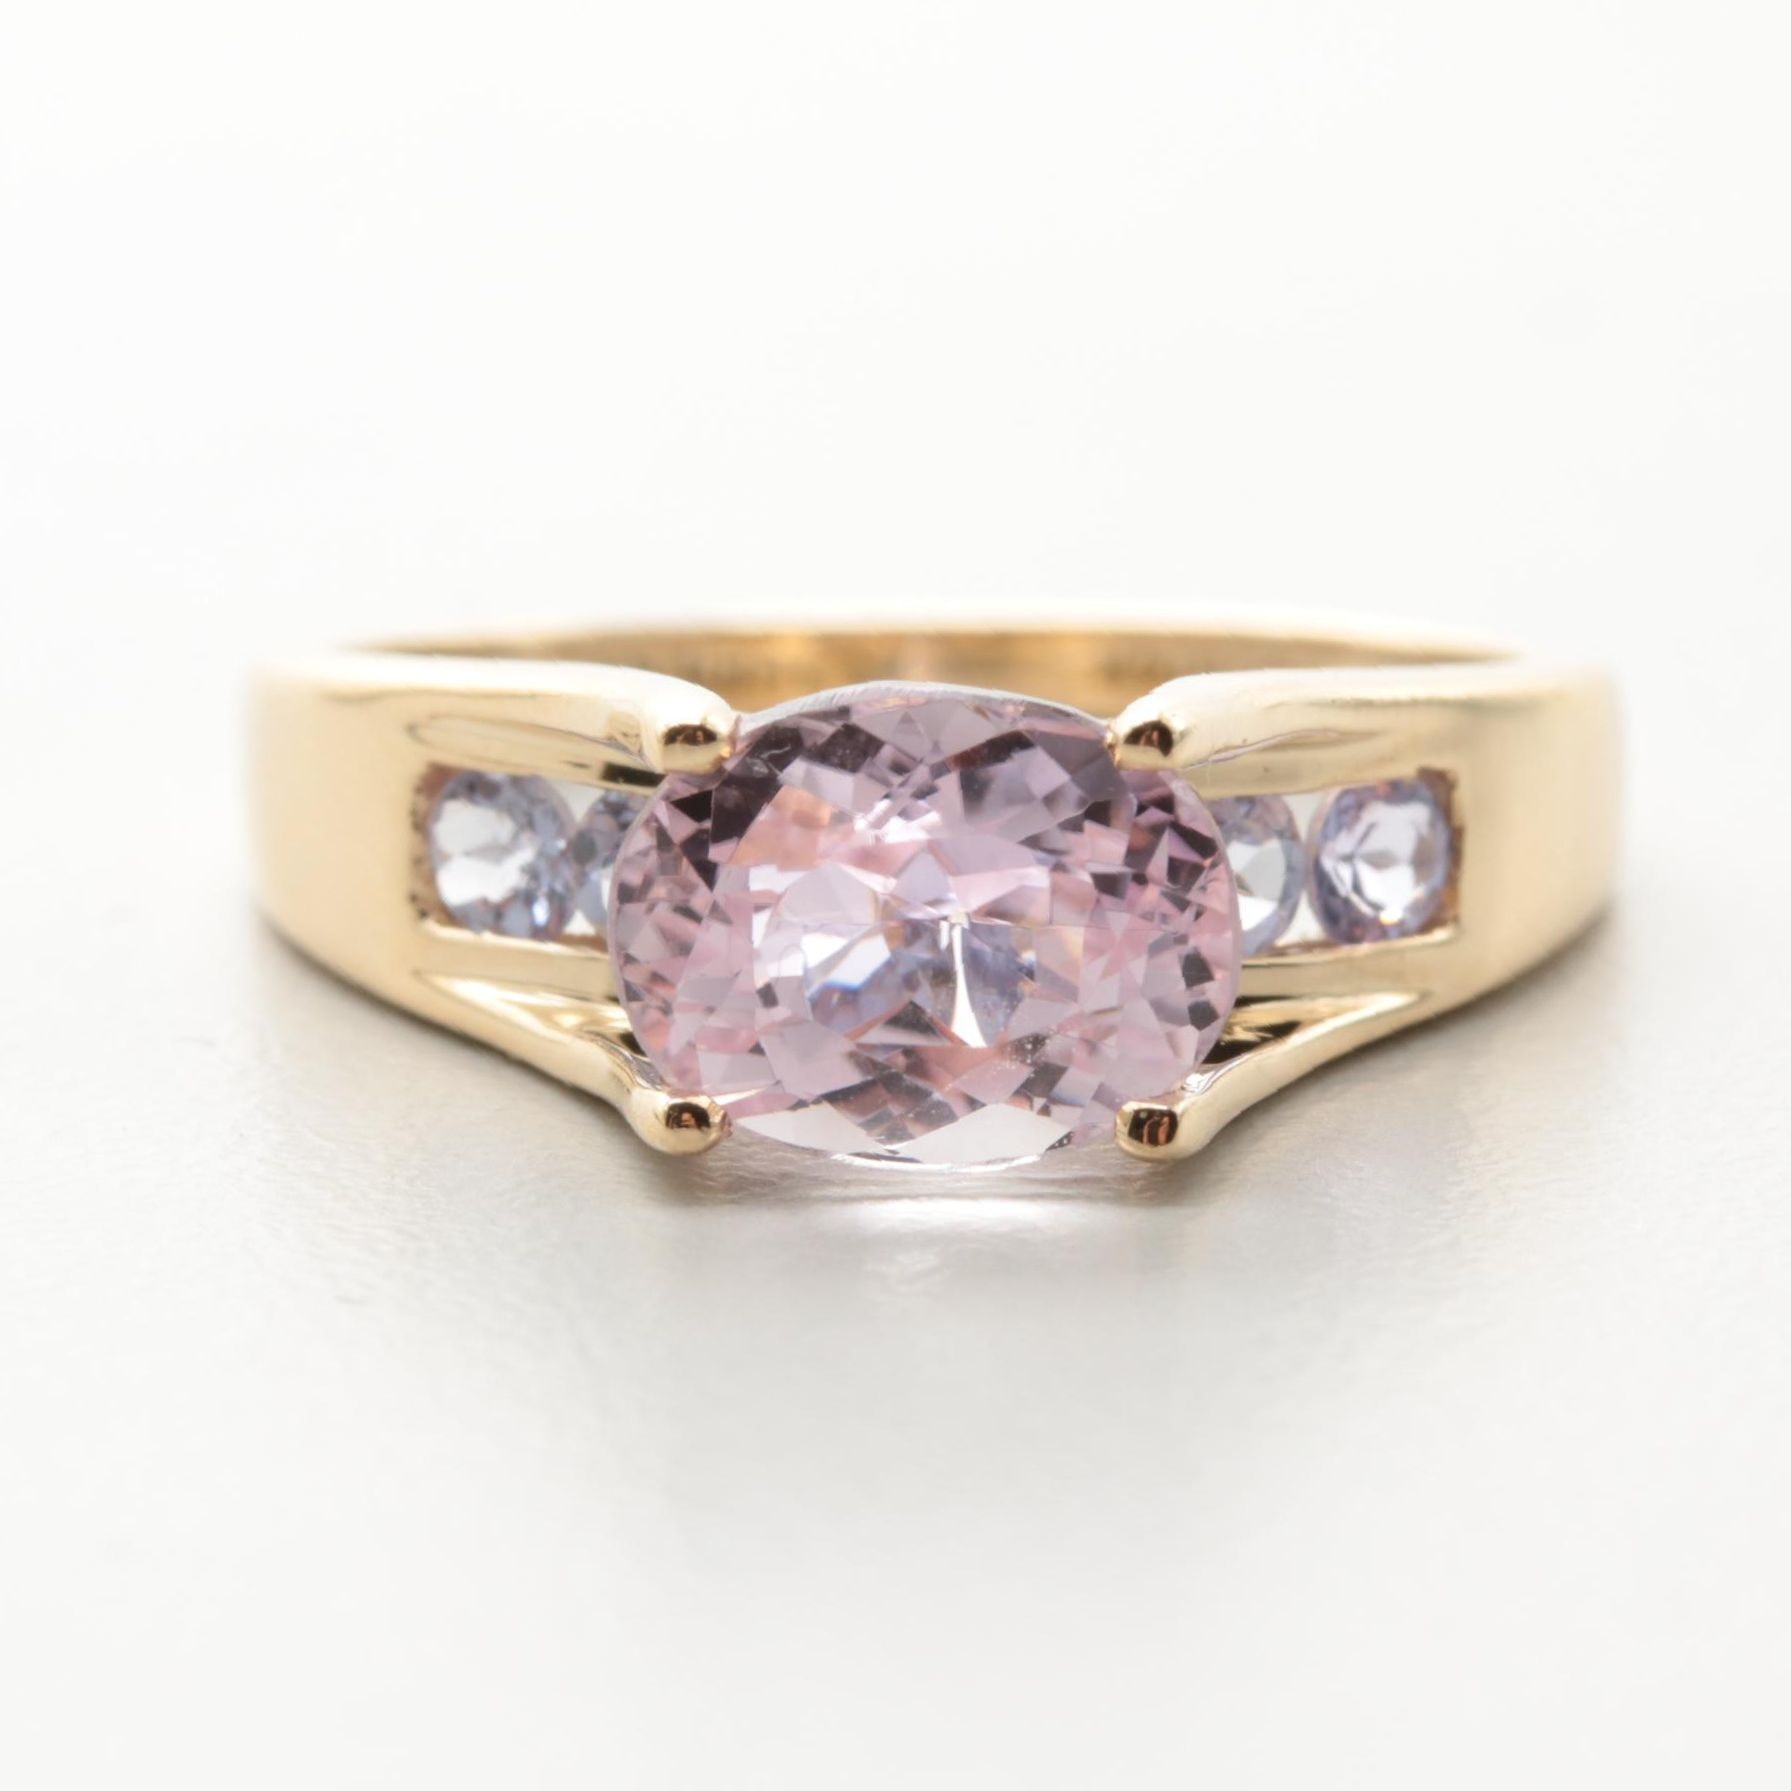 14K Yellow Gold 2.08 CT Kunzite and Tanzanite Ring